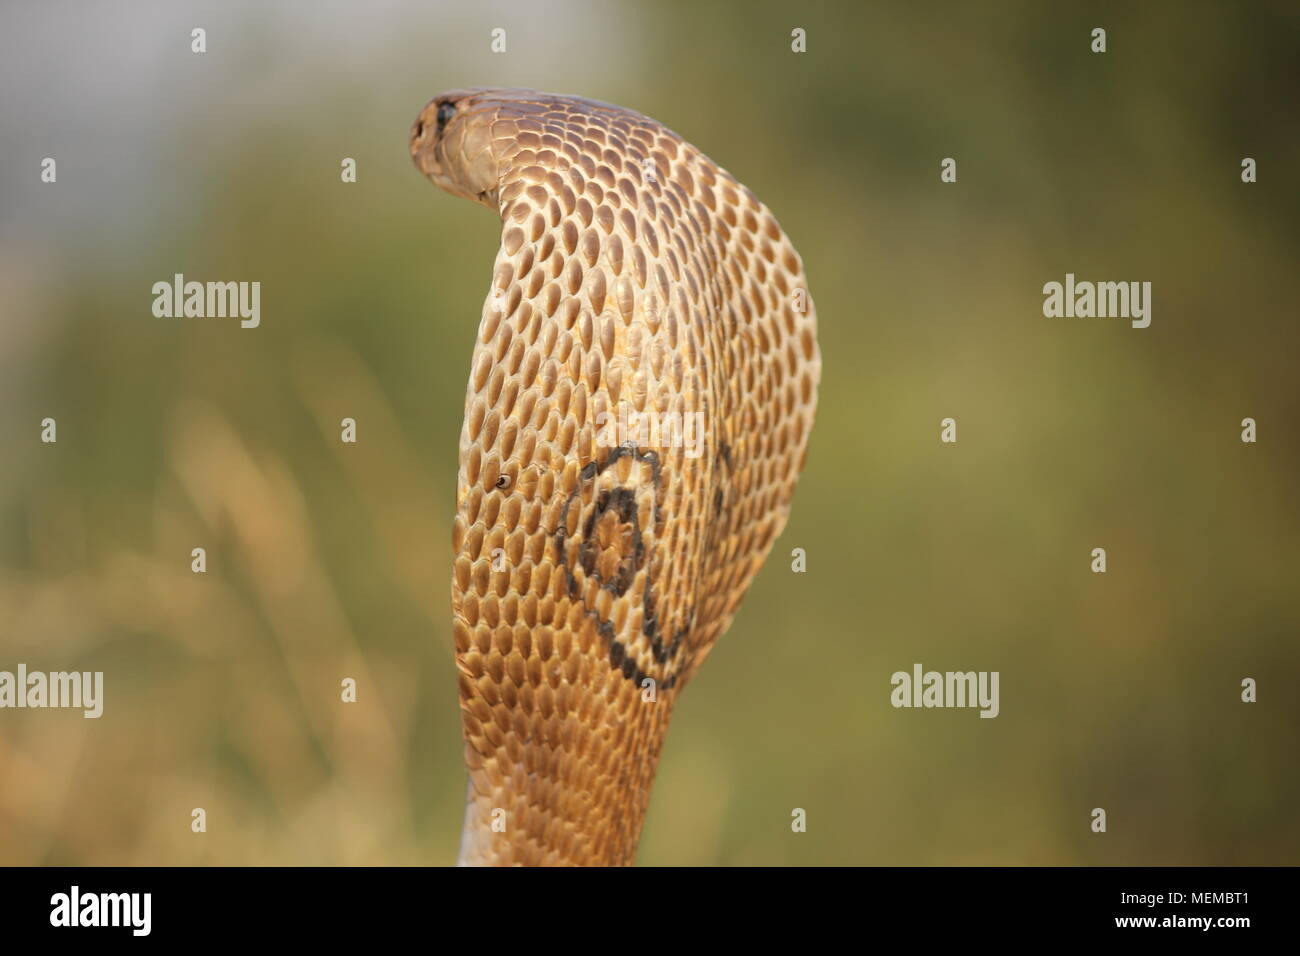 indian spectacle cobra in its aggressive possition - Stock Image